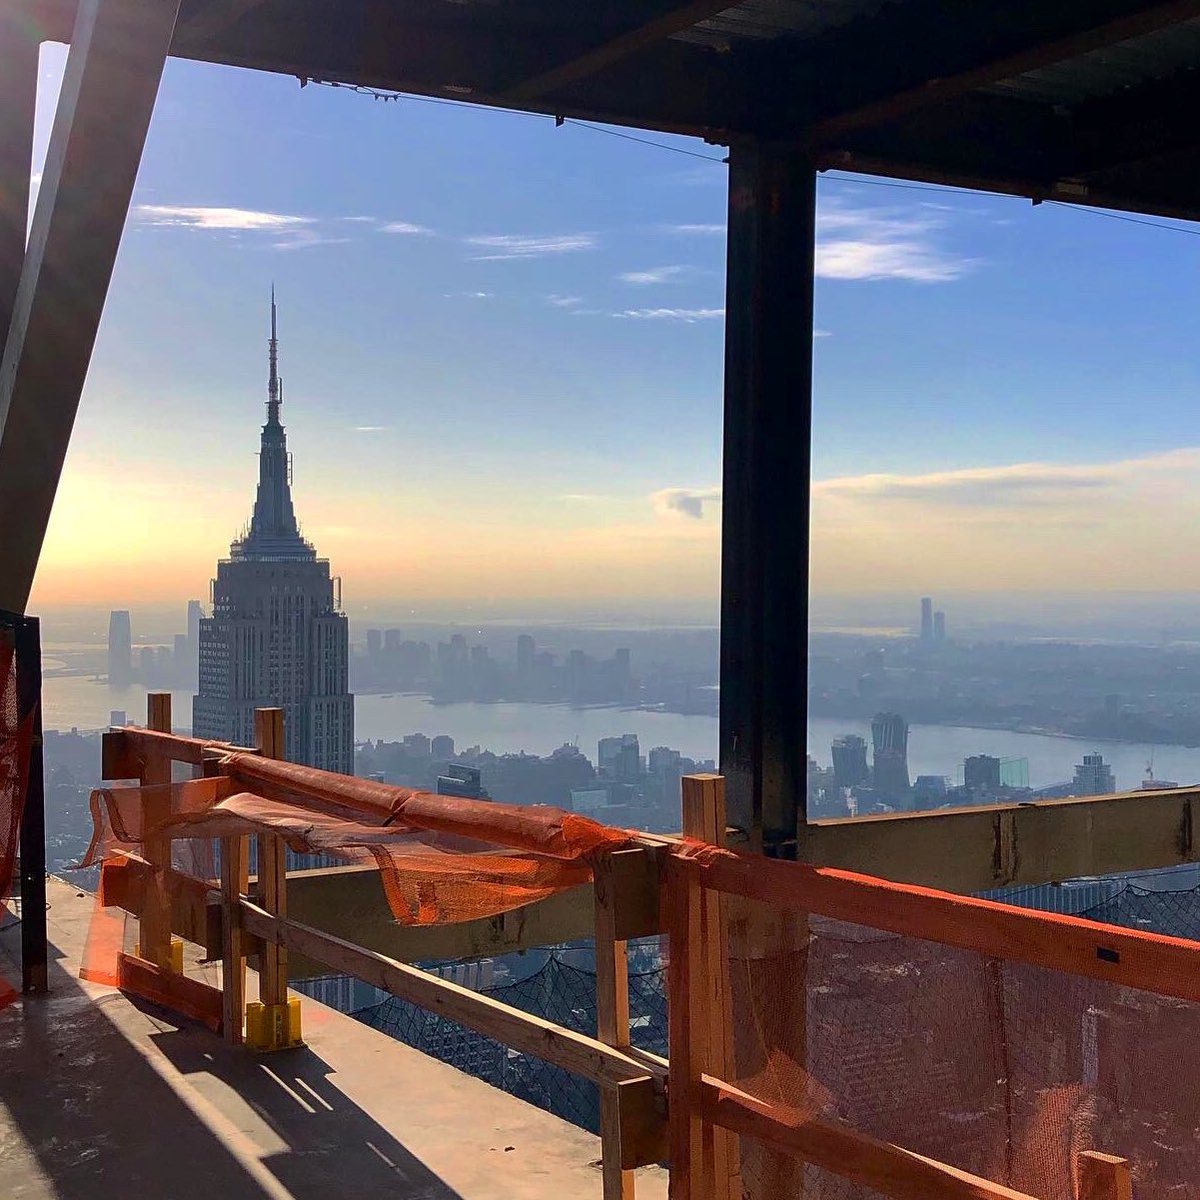 So that was a first! A great experience today visiting a skyscraper still under construction! This is the view 1,100 feet above Manhattan from @one_vanderbilt which opens later this year!